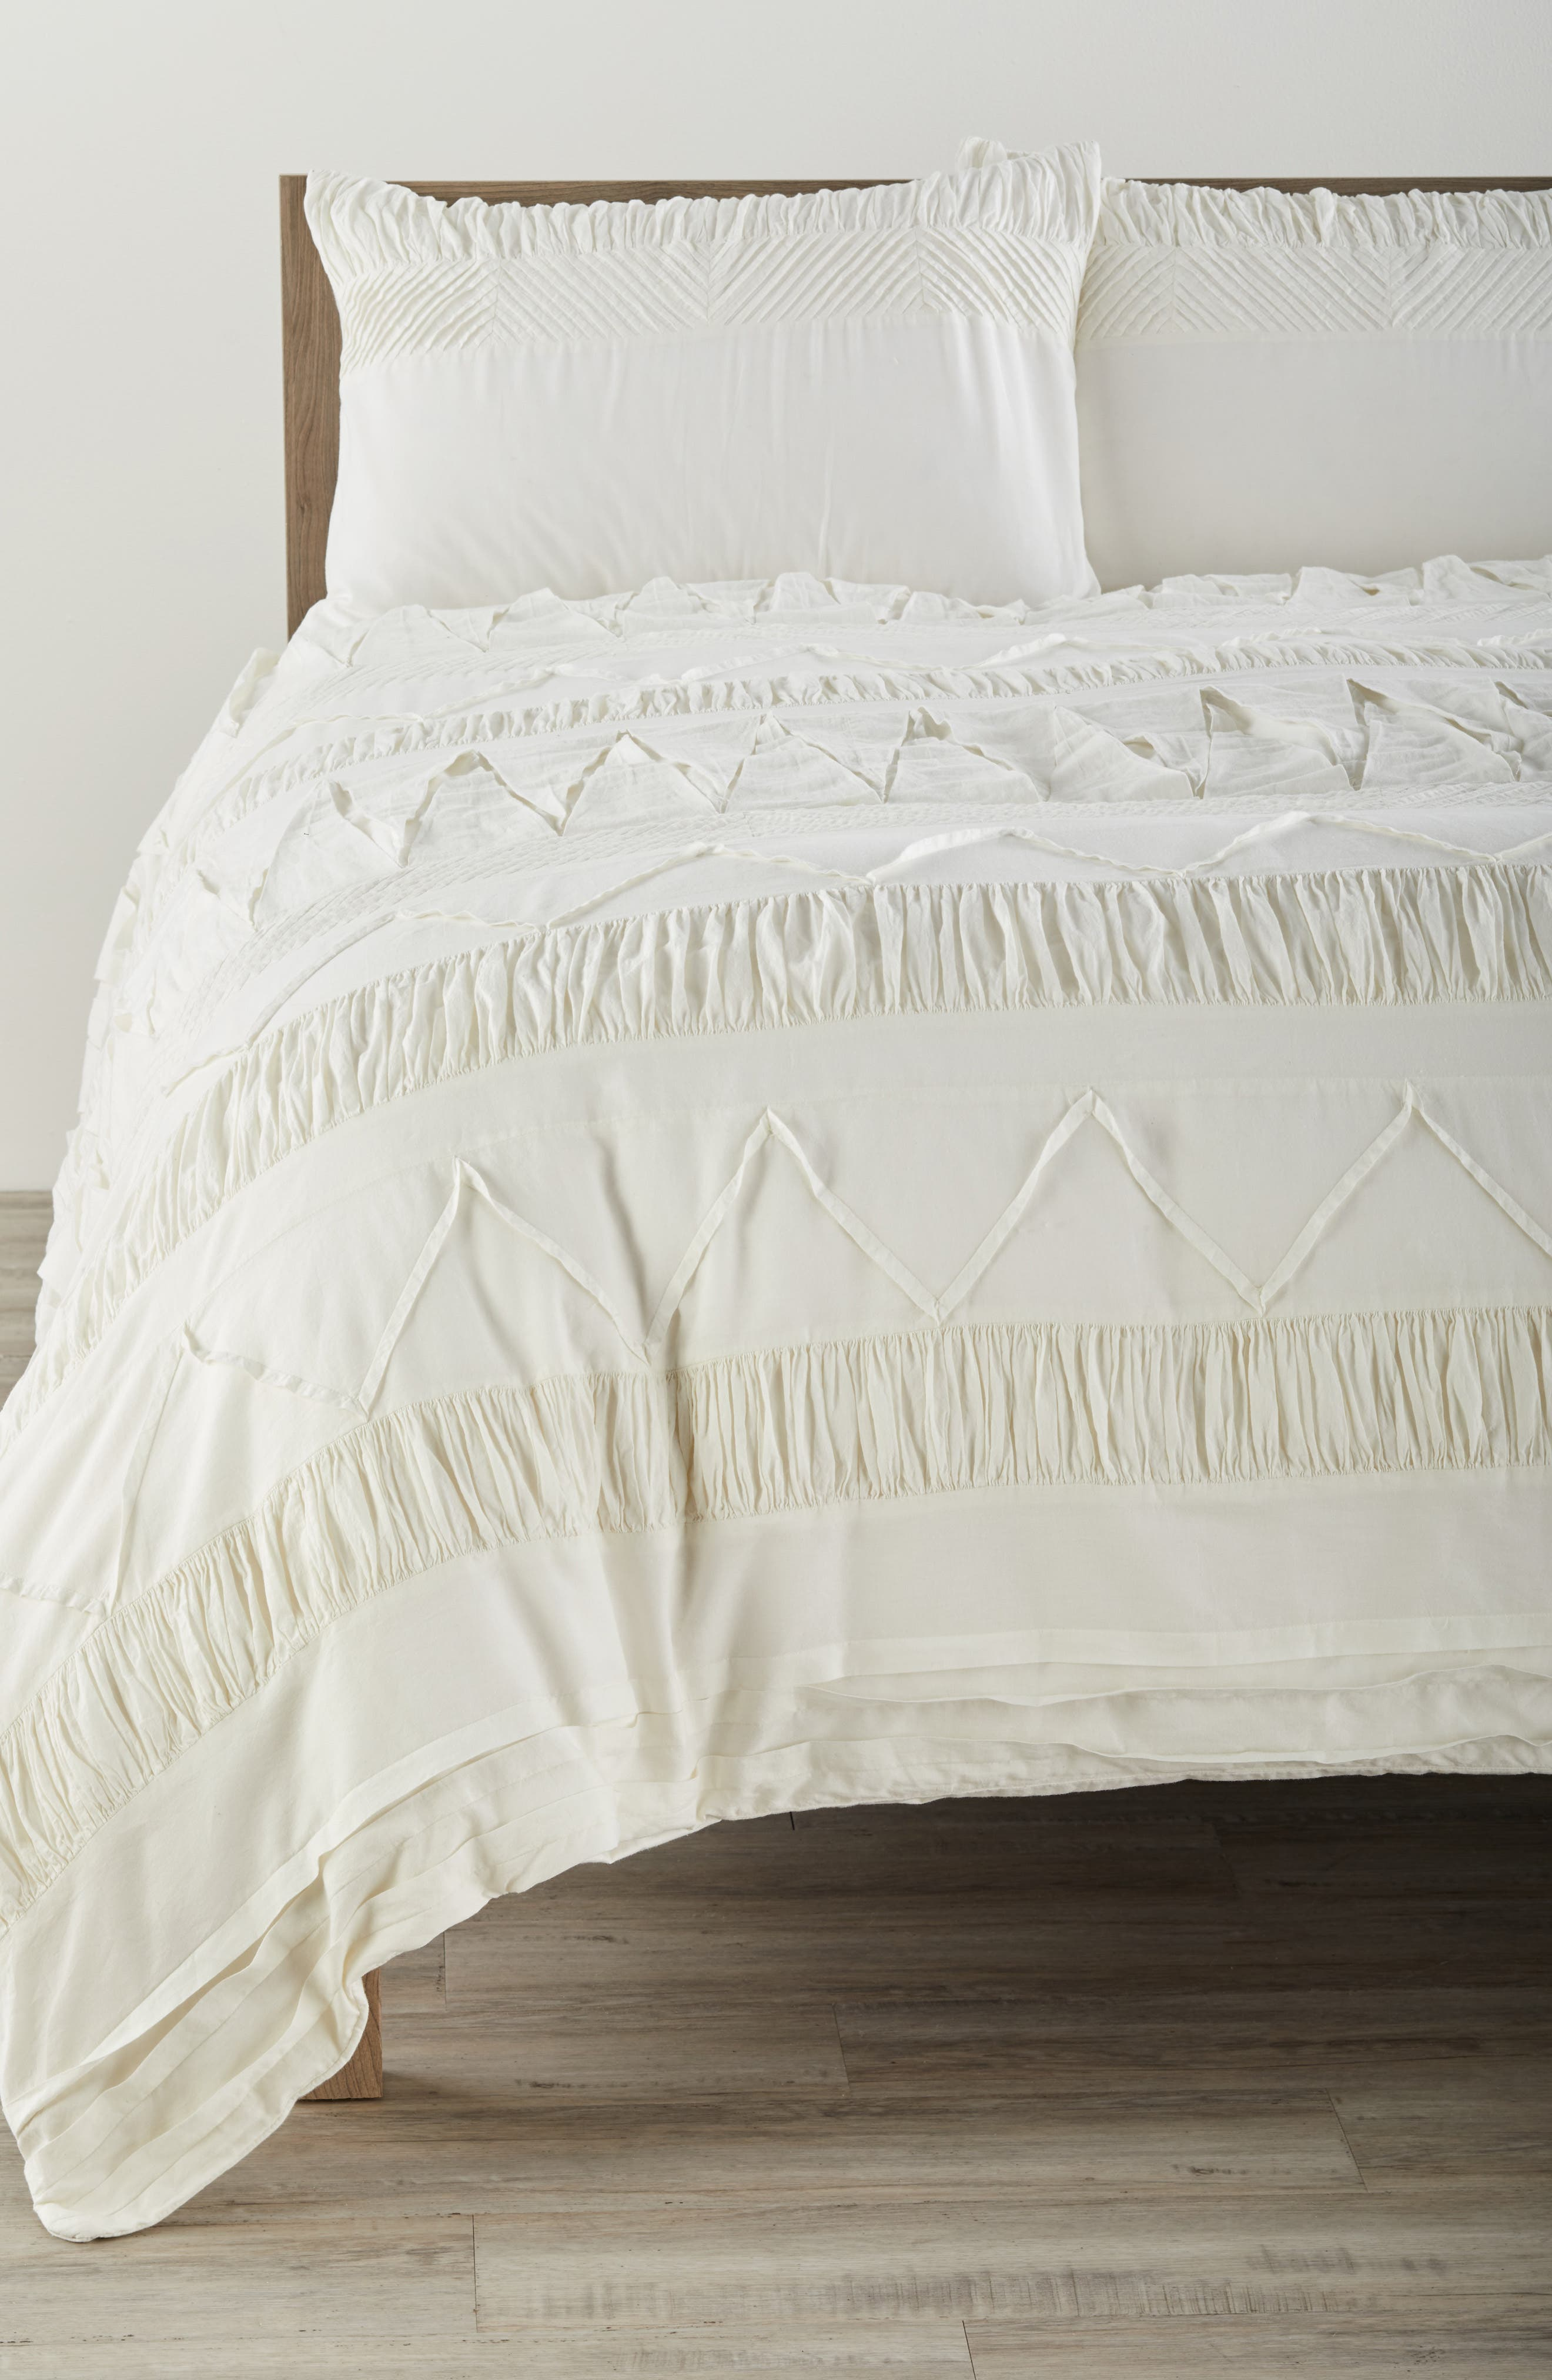 Nordstrom at Home Textured Duvet Cover